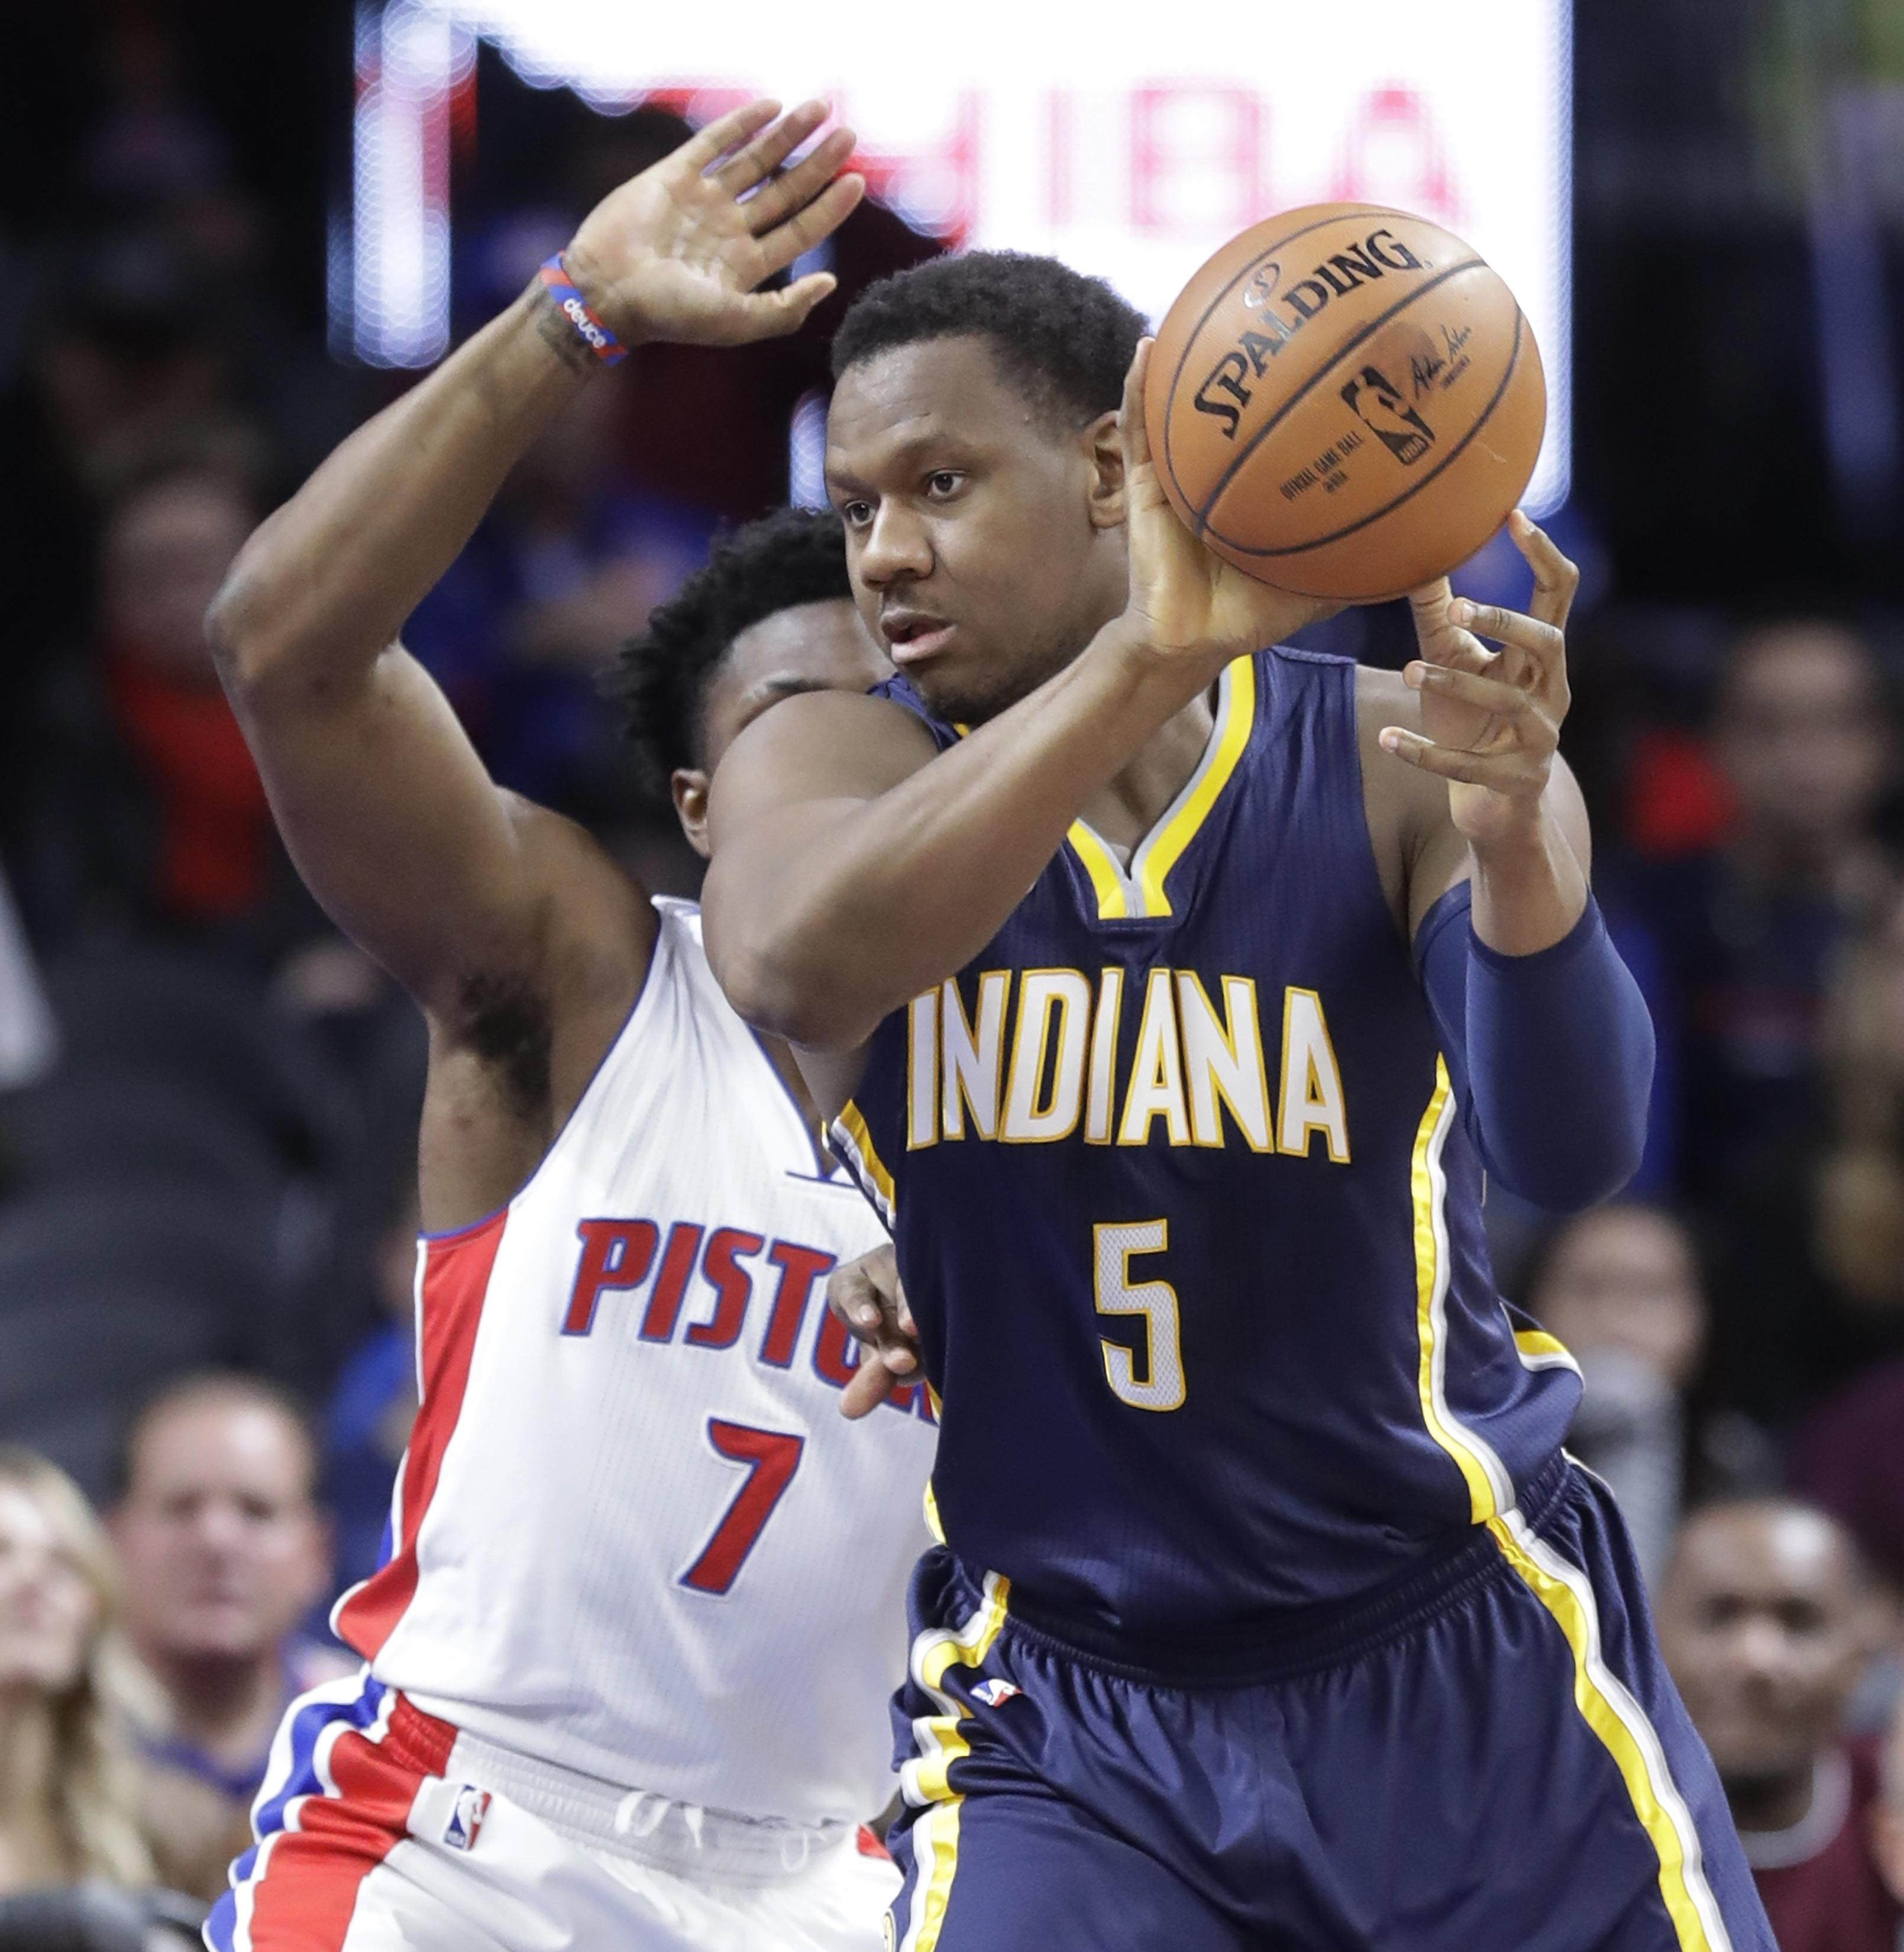 Pacers_pistons_basketball_55445